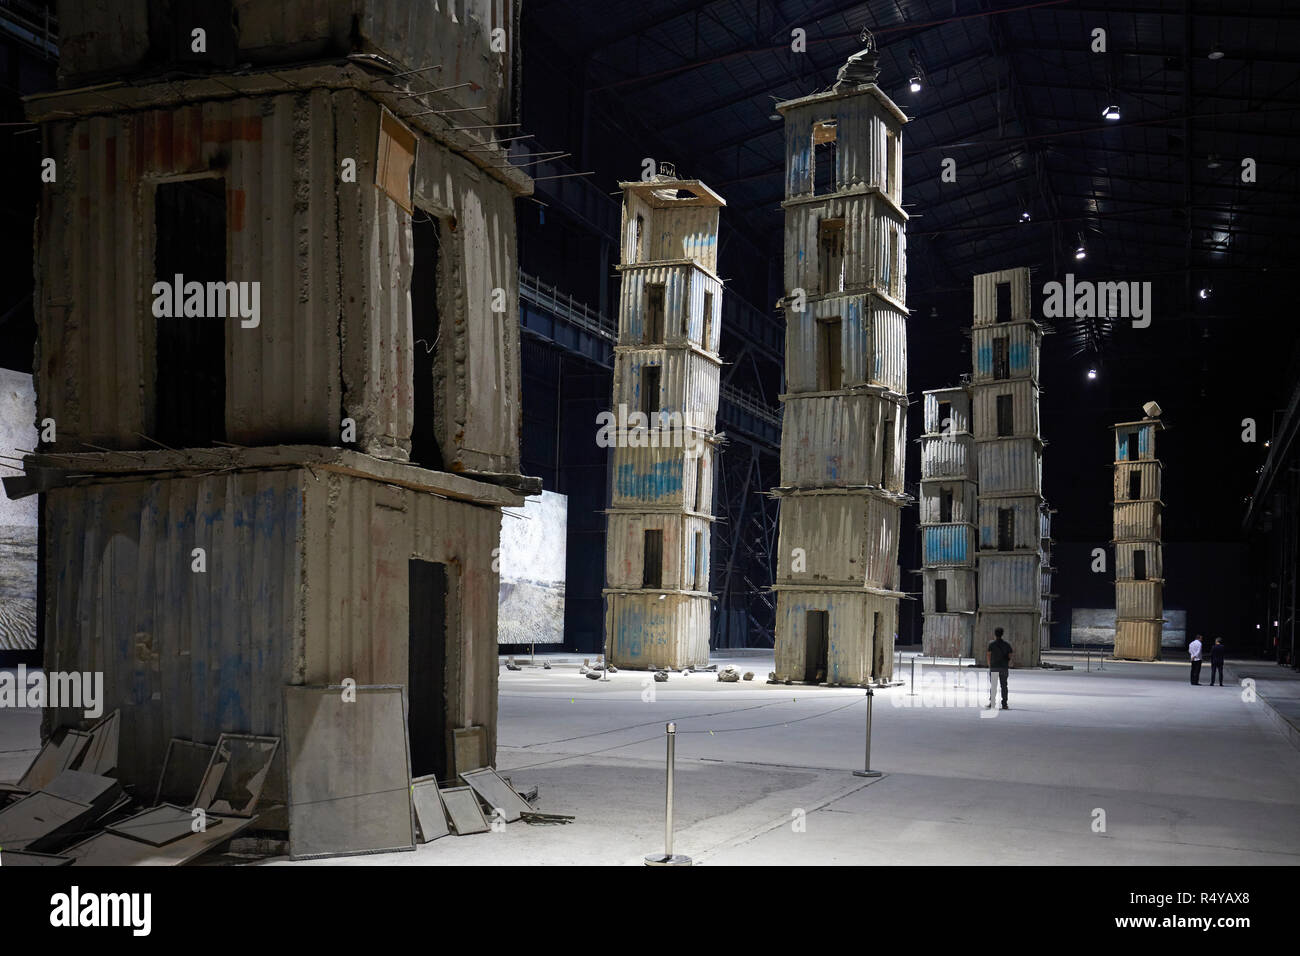 The Seven Heavenly Palaces by Anselm Kiefer at the Art exposure at Pirelli Hangar Bicocca in Milan, Italy Stock Photo